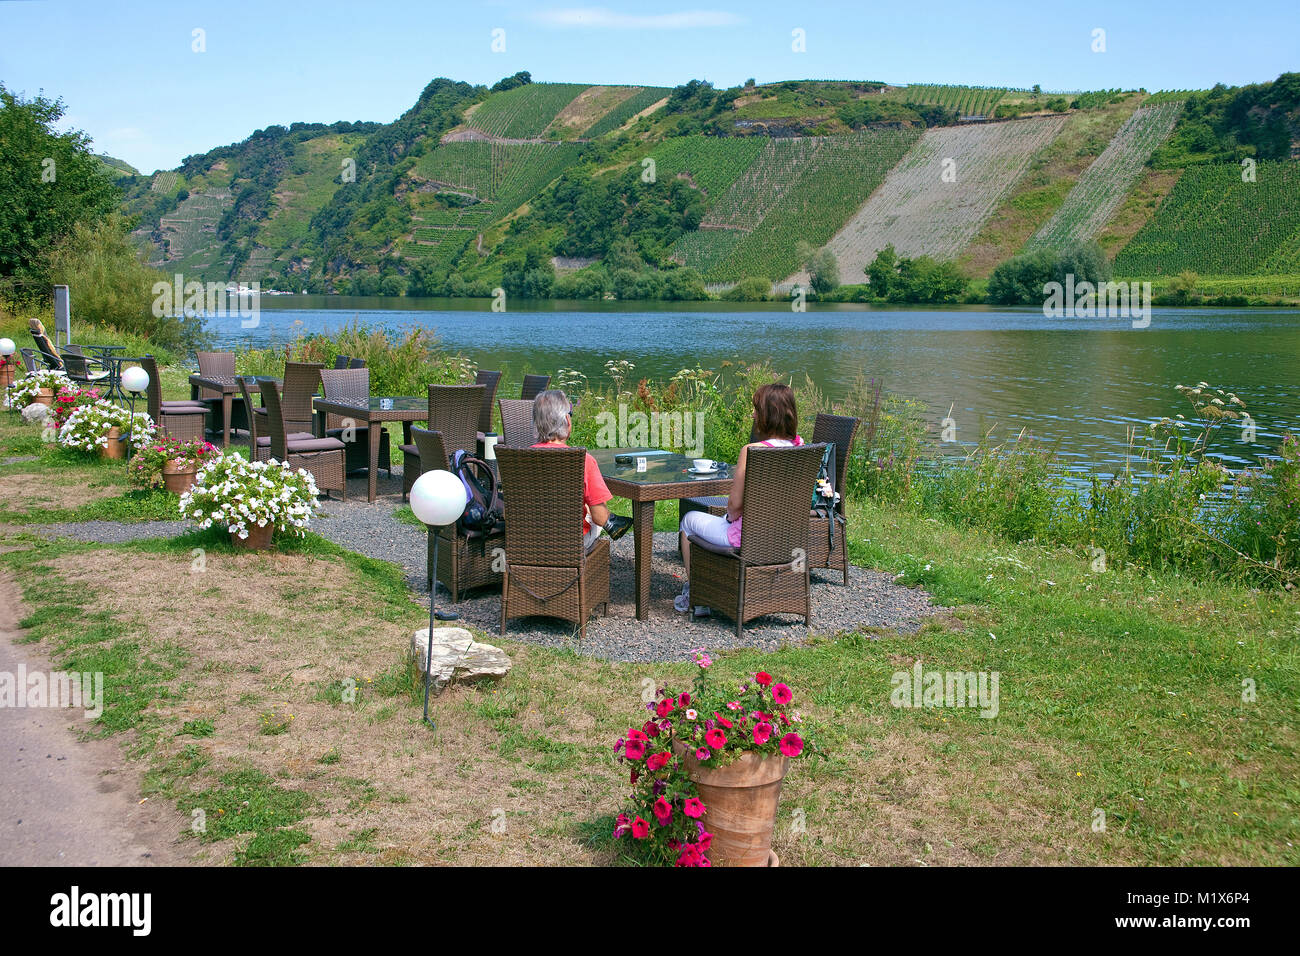 Restaurant Moselblick, romantic lunch and dinner at the riverside, Piesport, Moselle river, Rhineland-Palatinate, - Stock Image